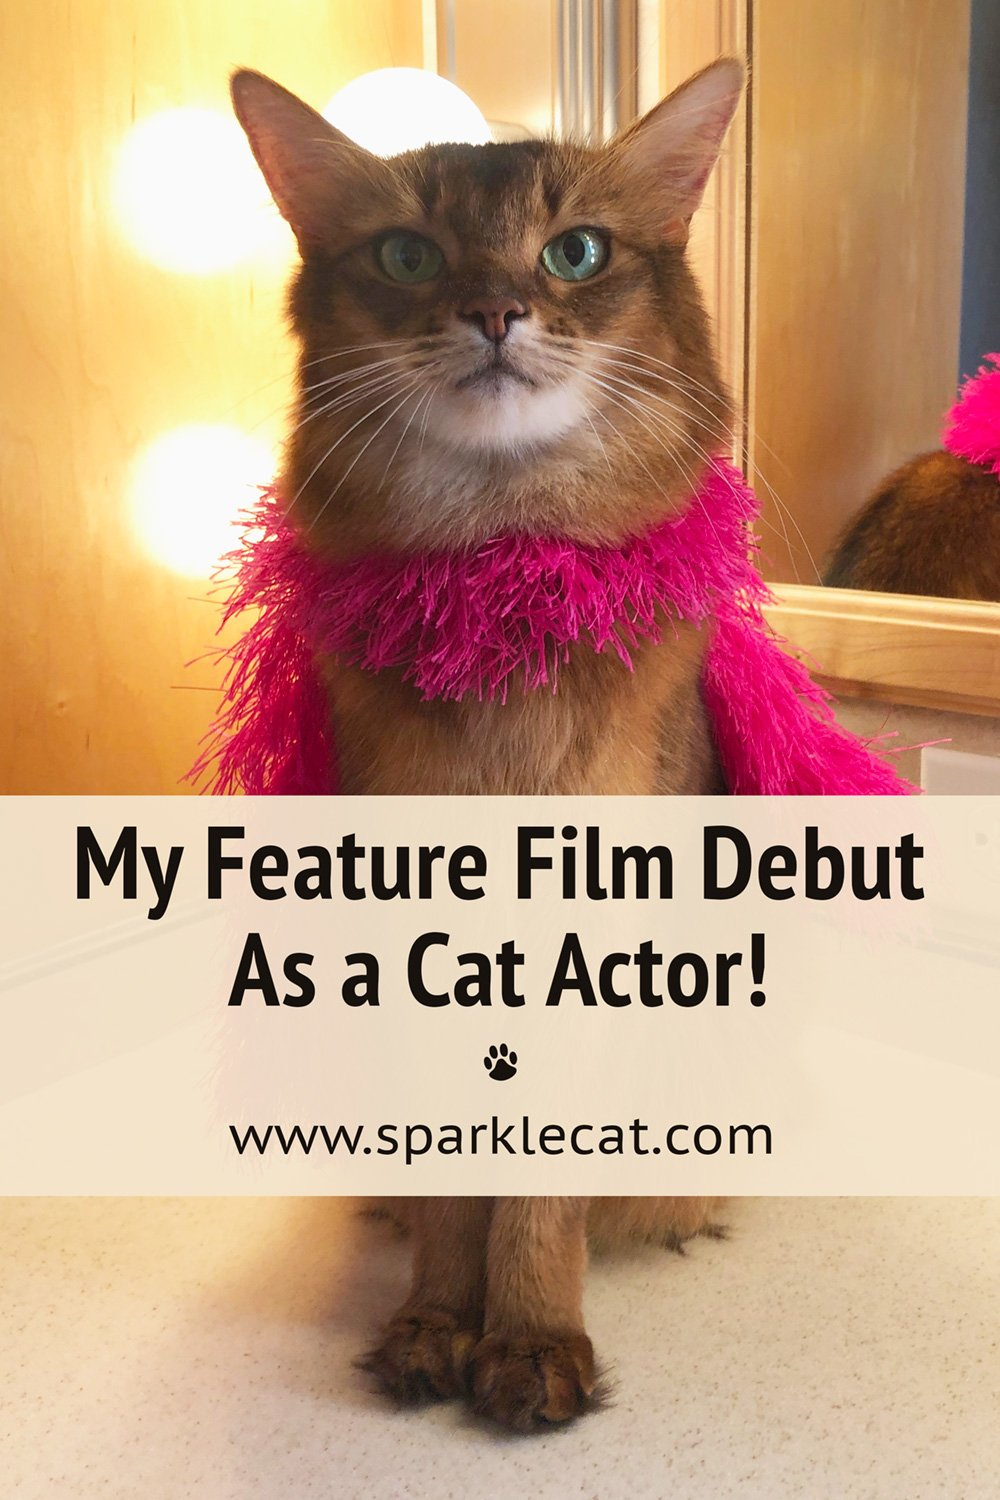 My Feature Film Debut as a Cat Actor Is Out!